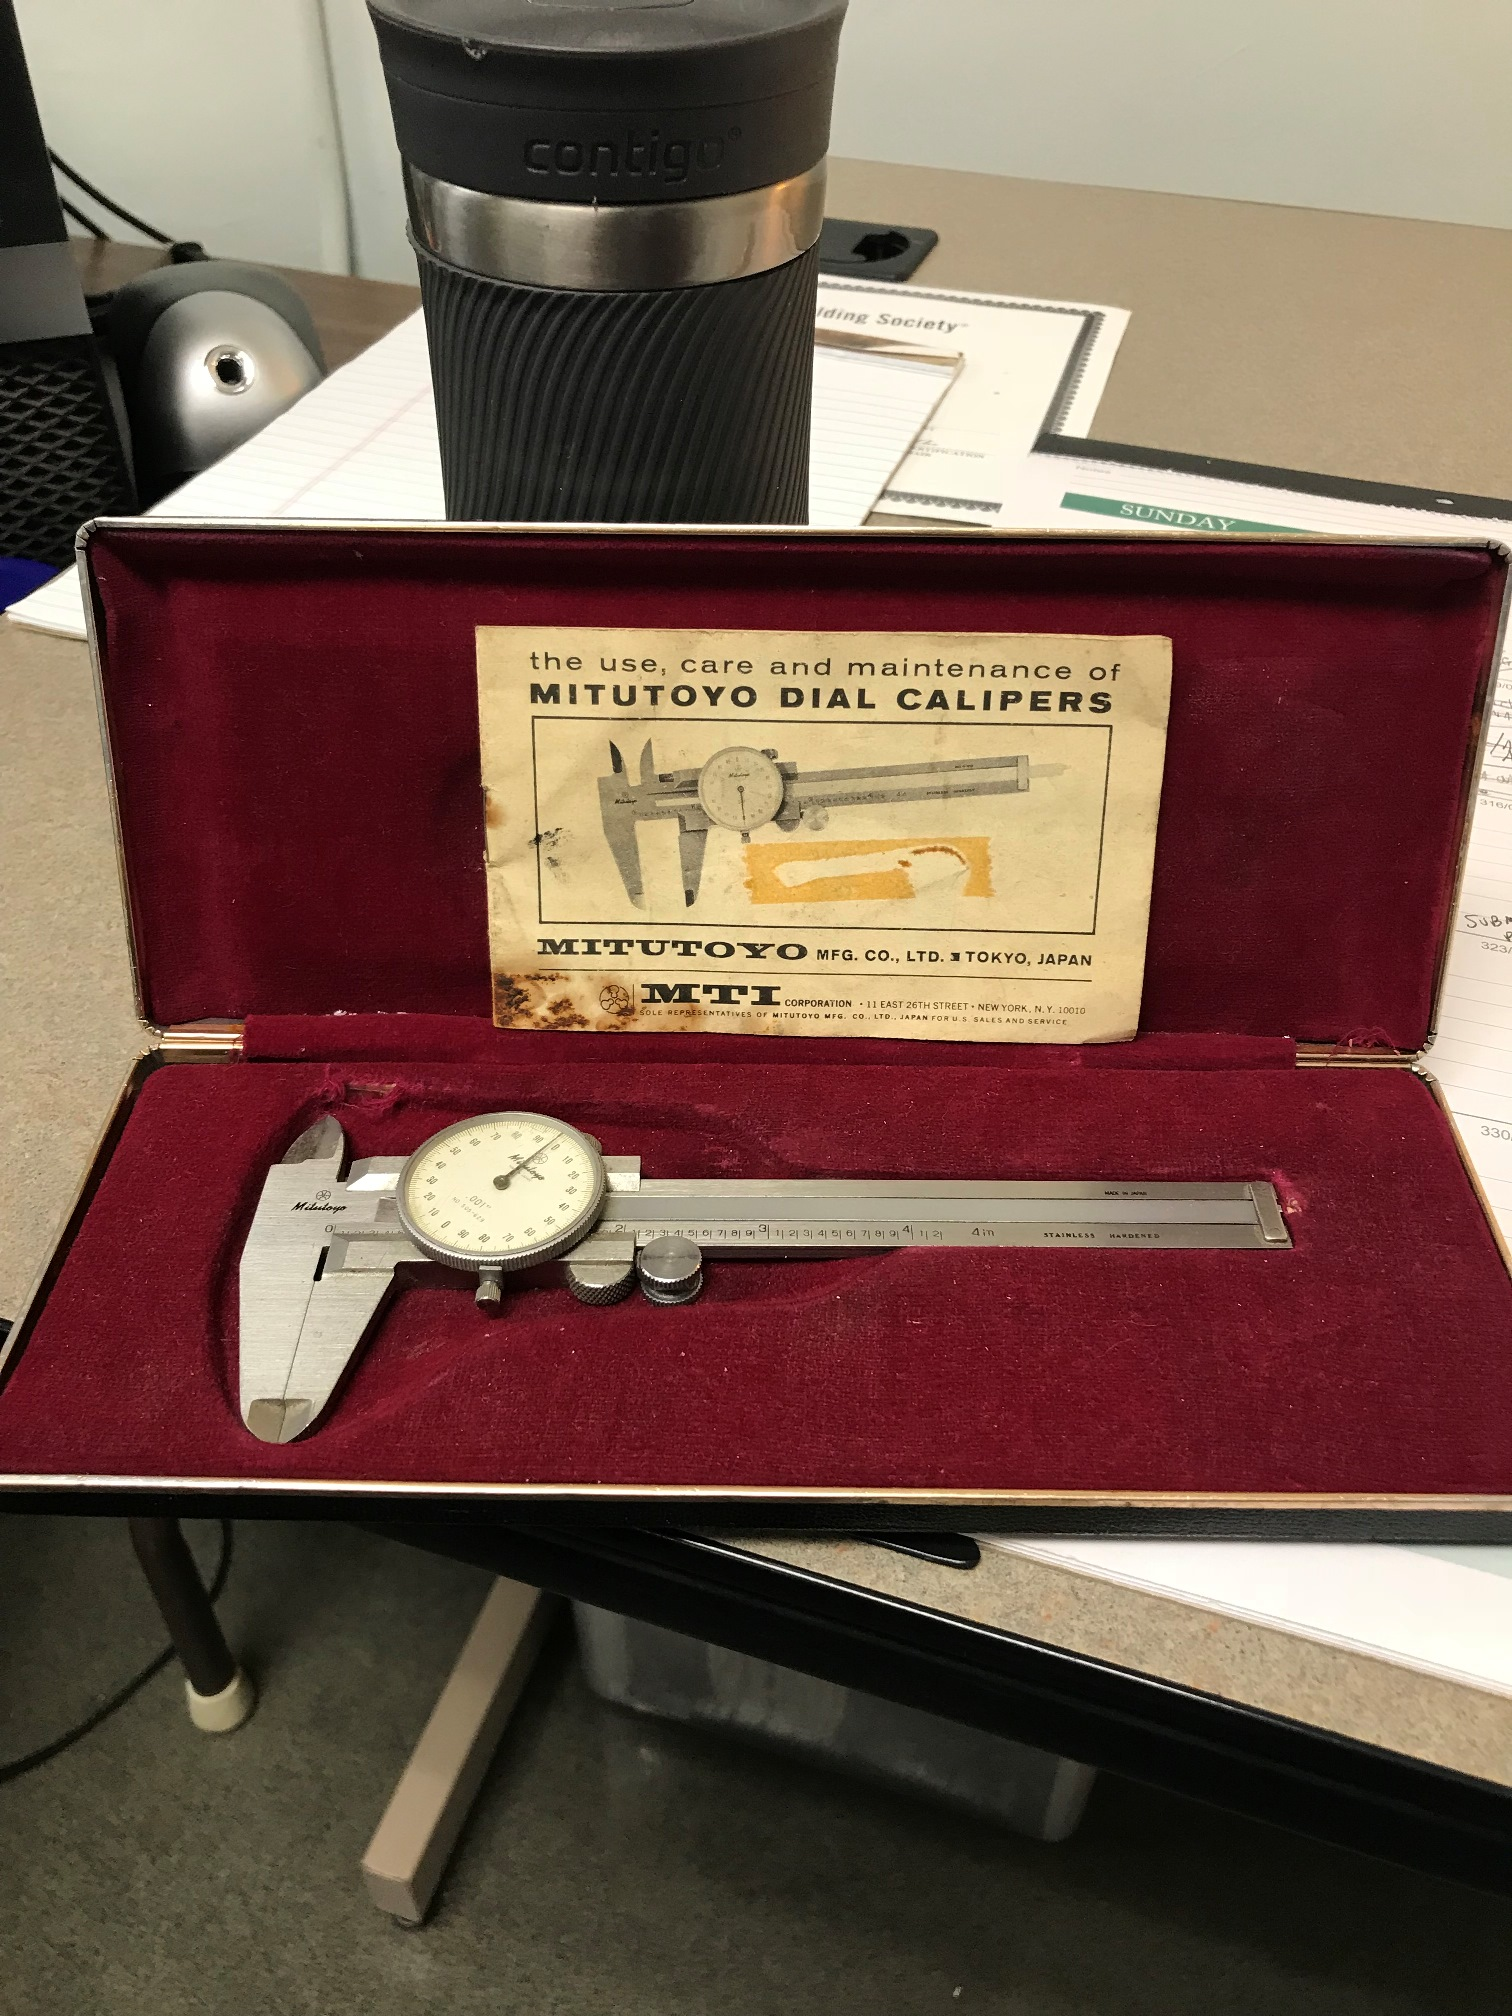 Dial Calipers, donated by Kurtti